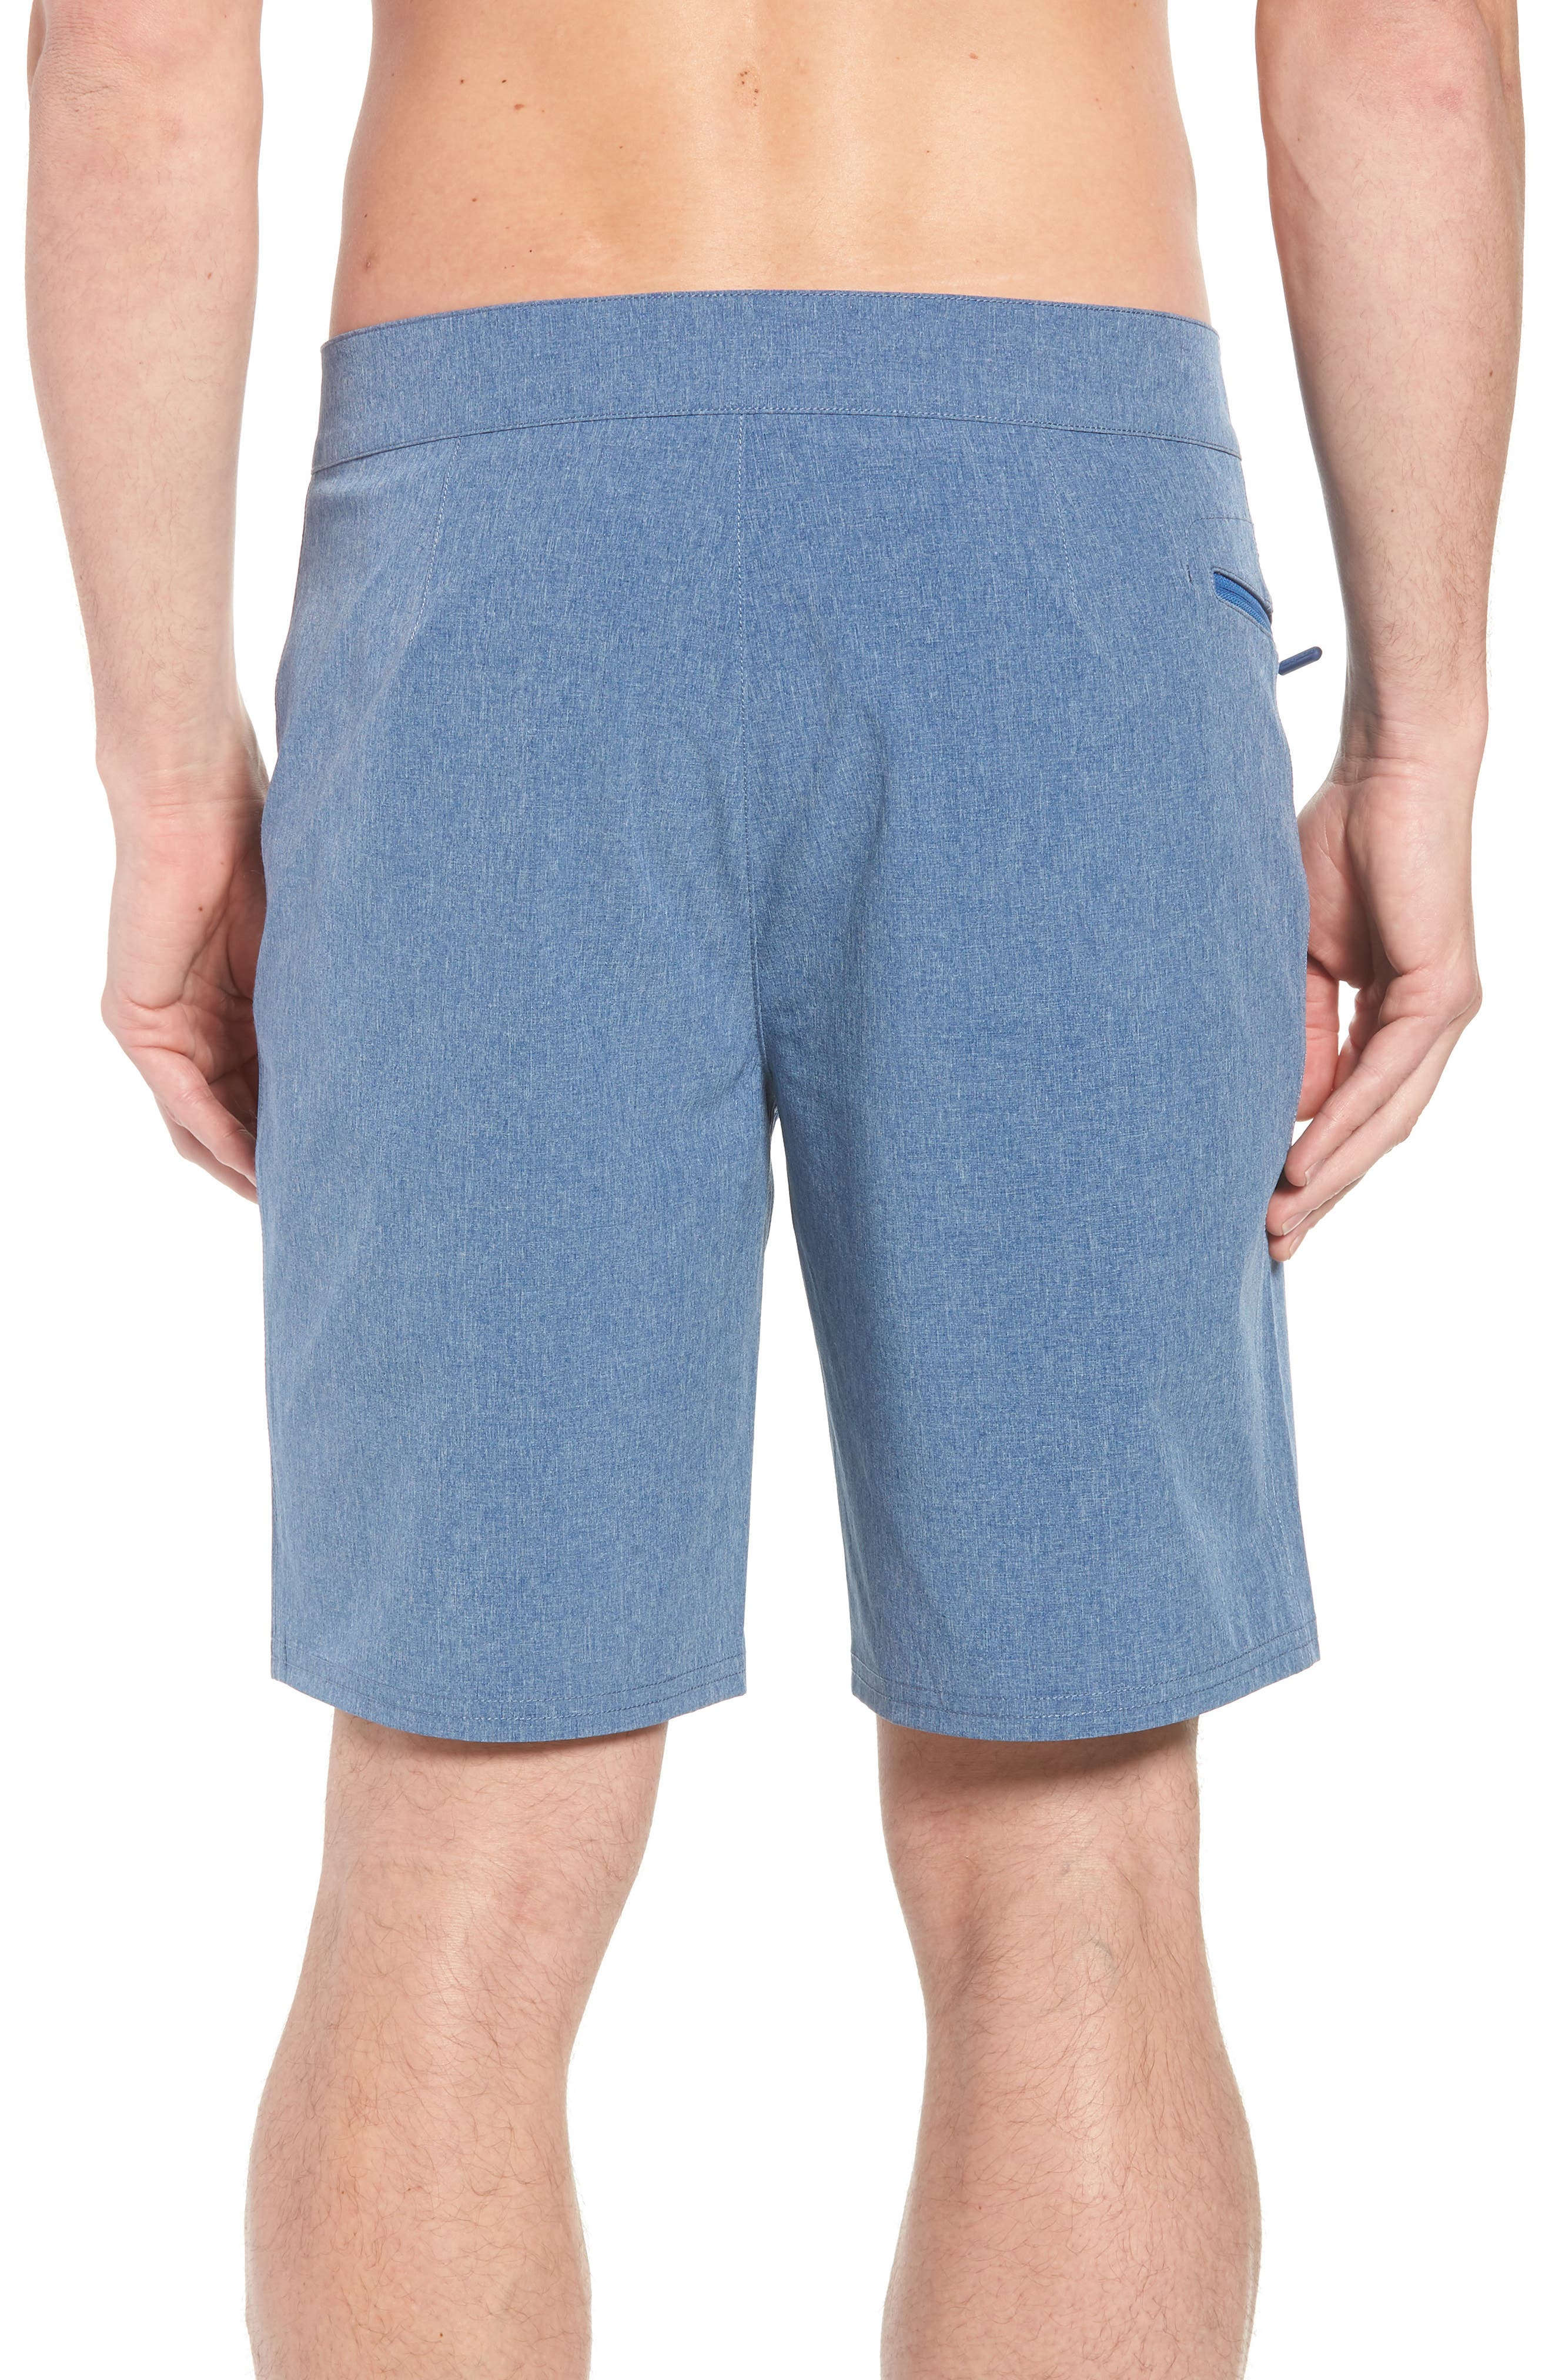 Heather Stretch Board Shorts,                             Alternate thumbnail 2, color,                             461